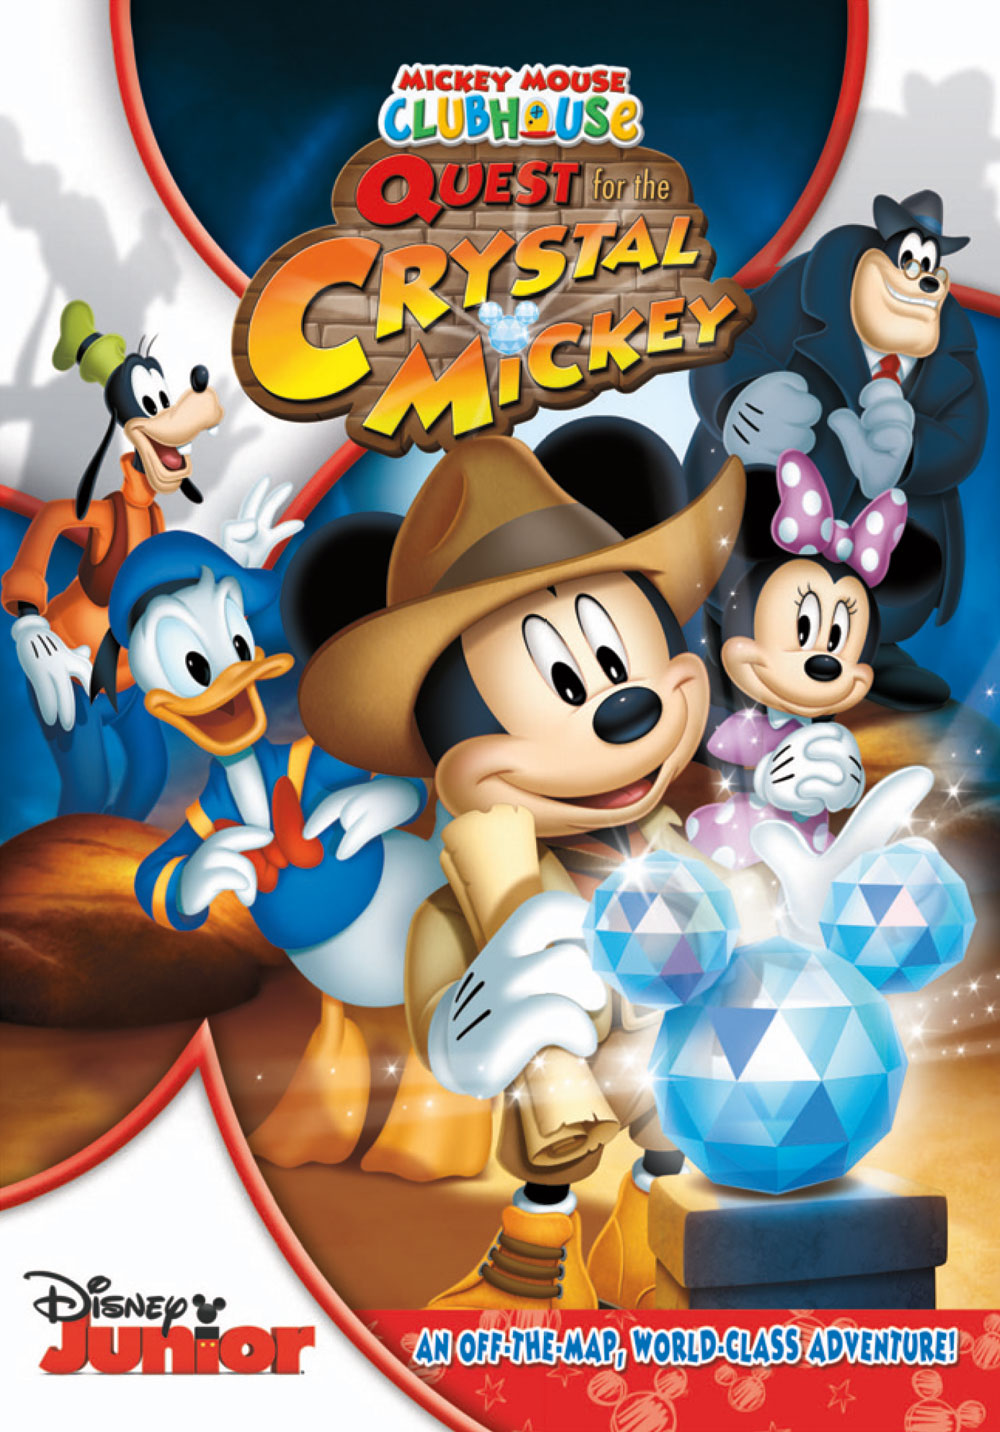 Quest for the Crystal Mickey! | Disney Wiki | FANDOM powered